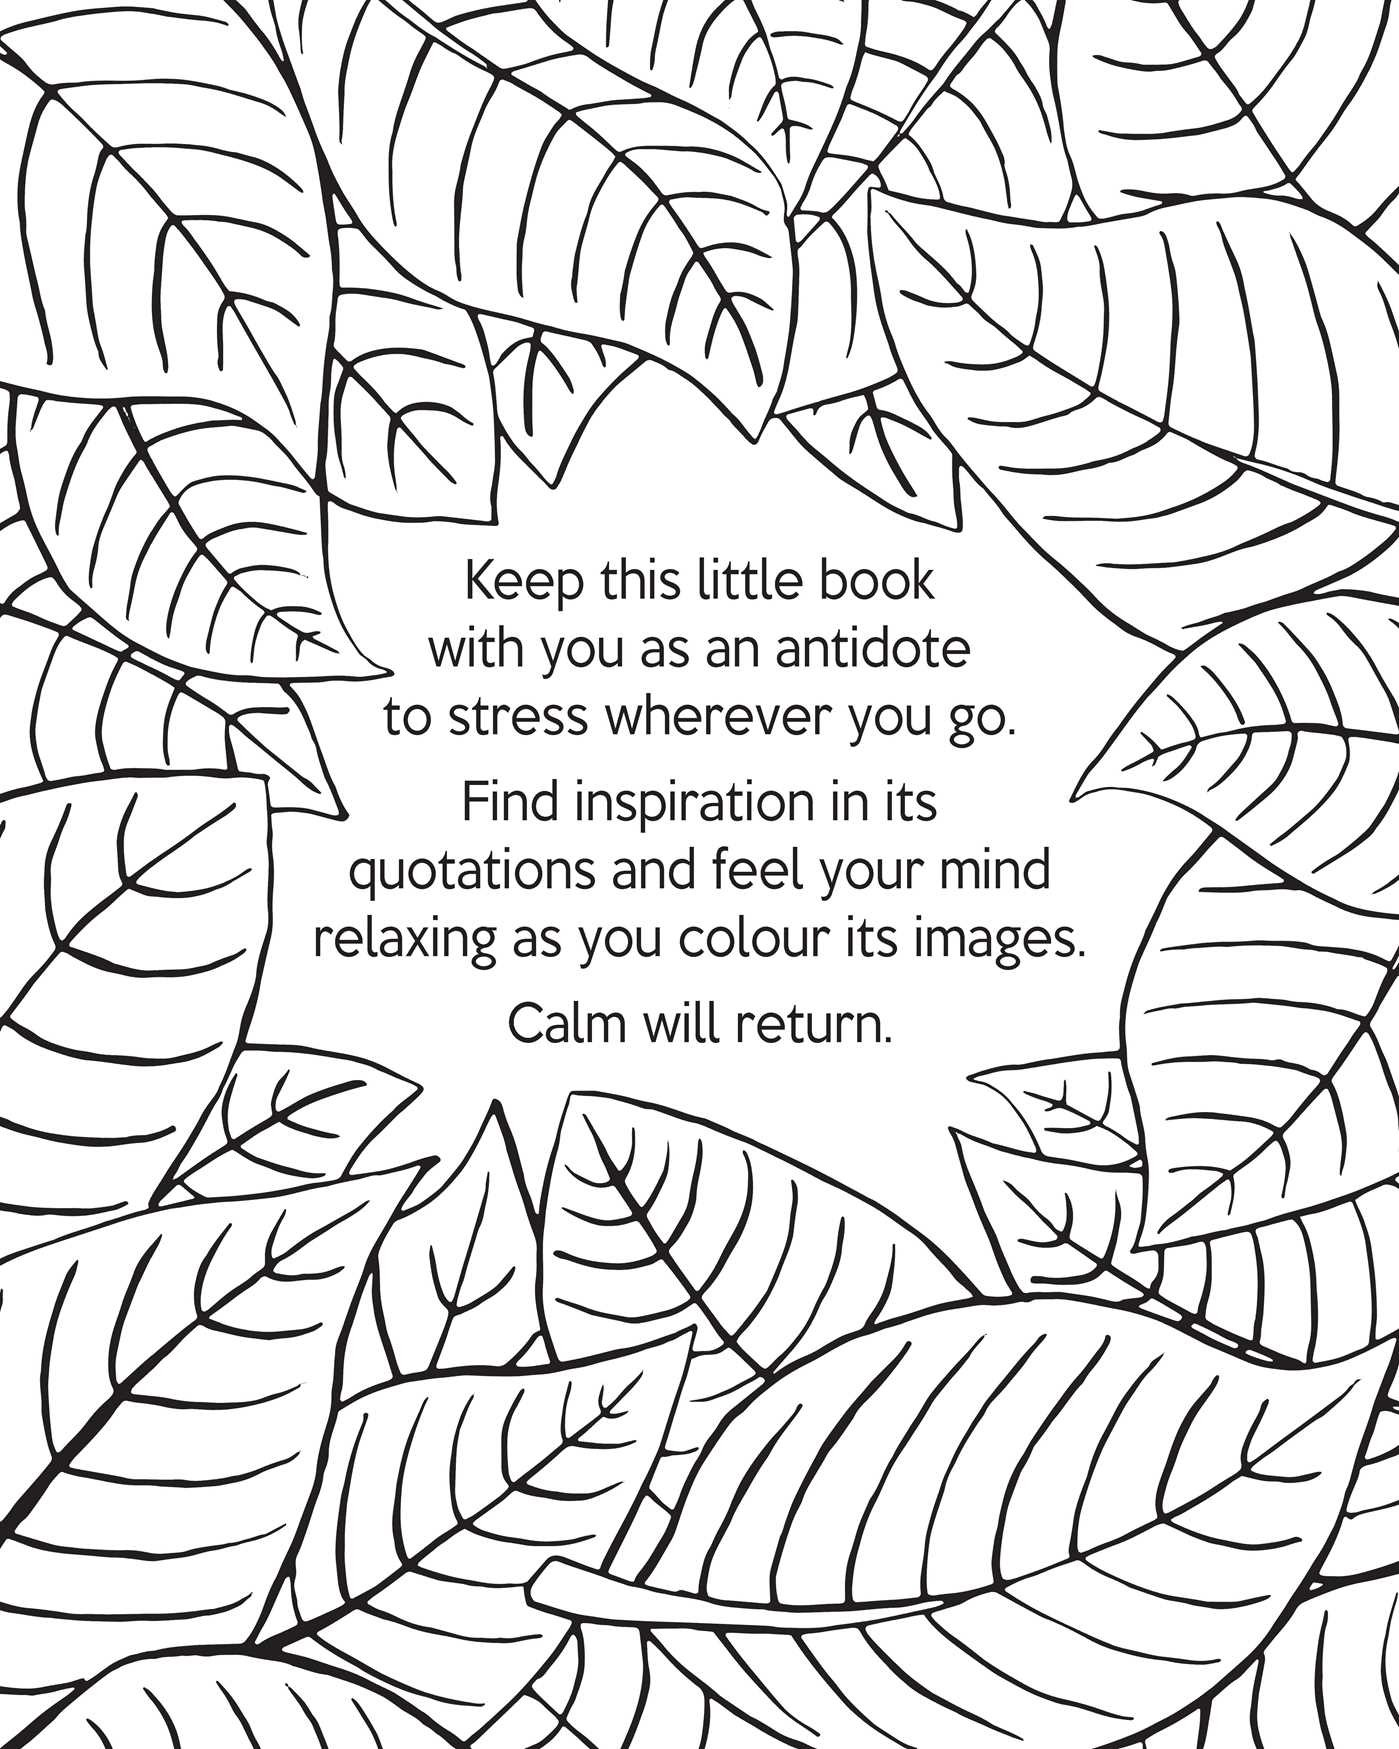 Coloring pages relaxing -  The Little Book Of Calm Coloring 9781501137556 In01